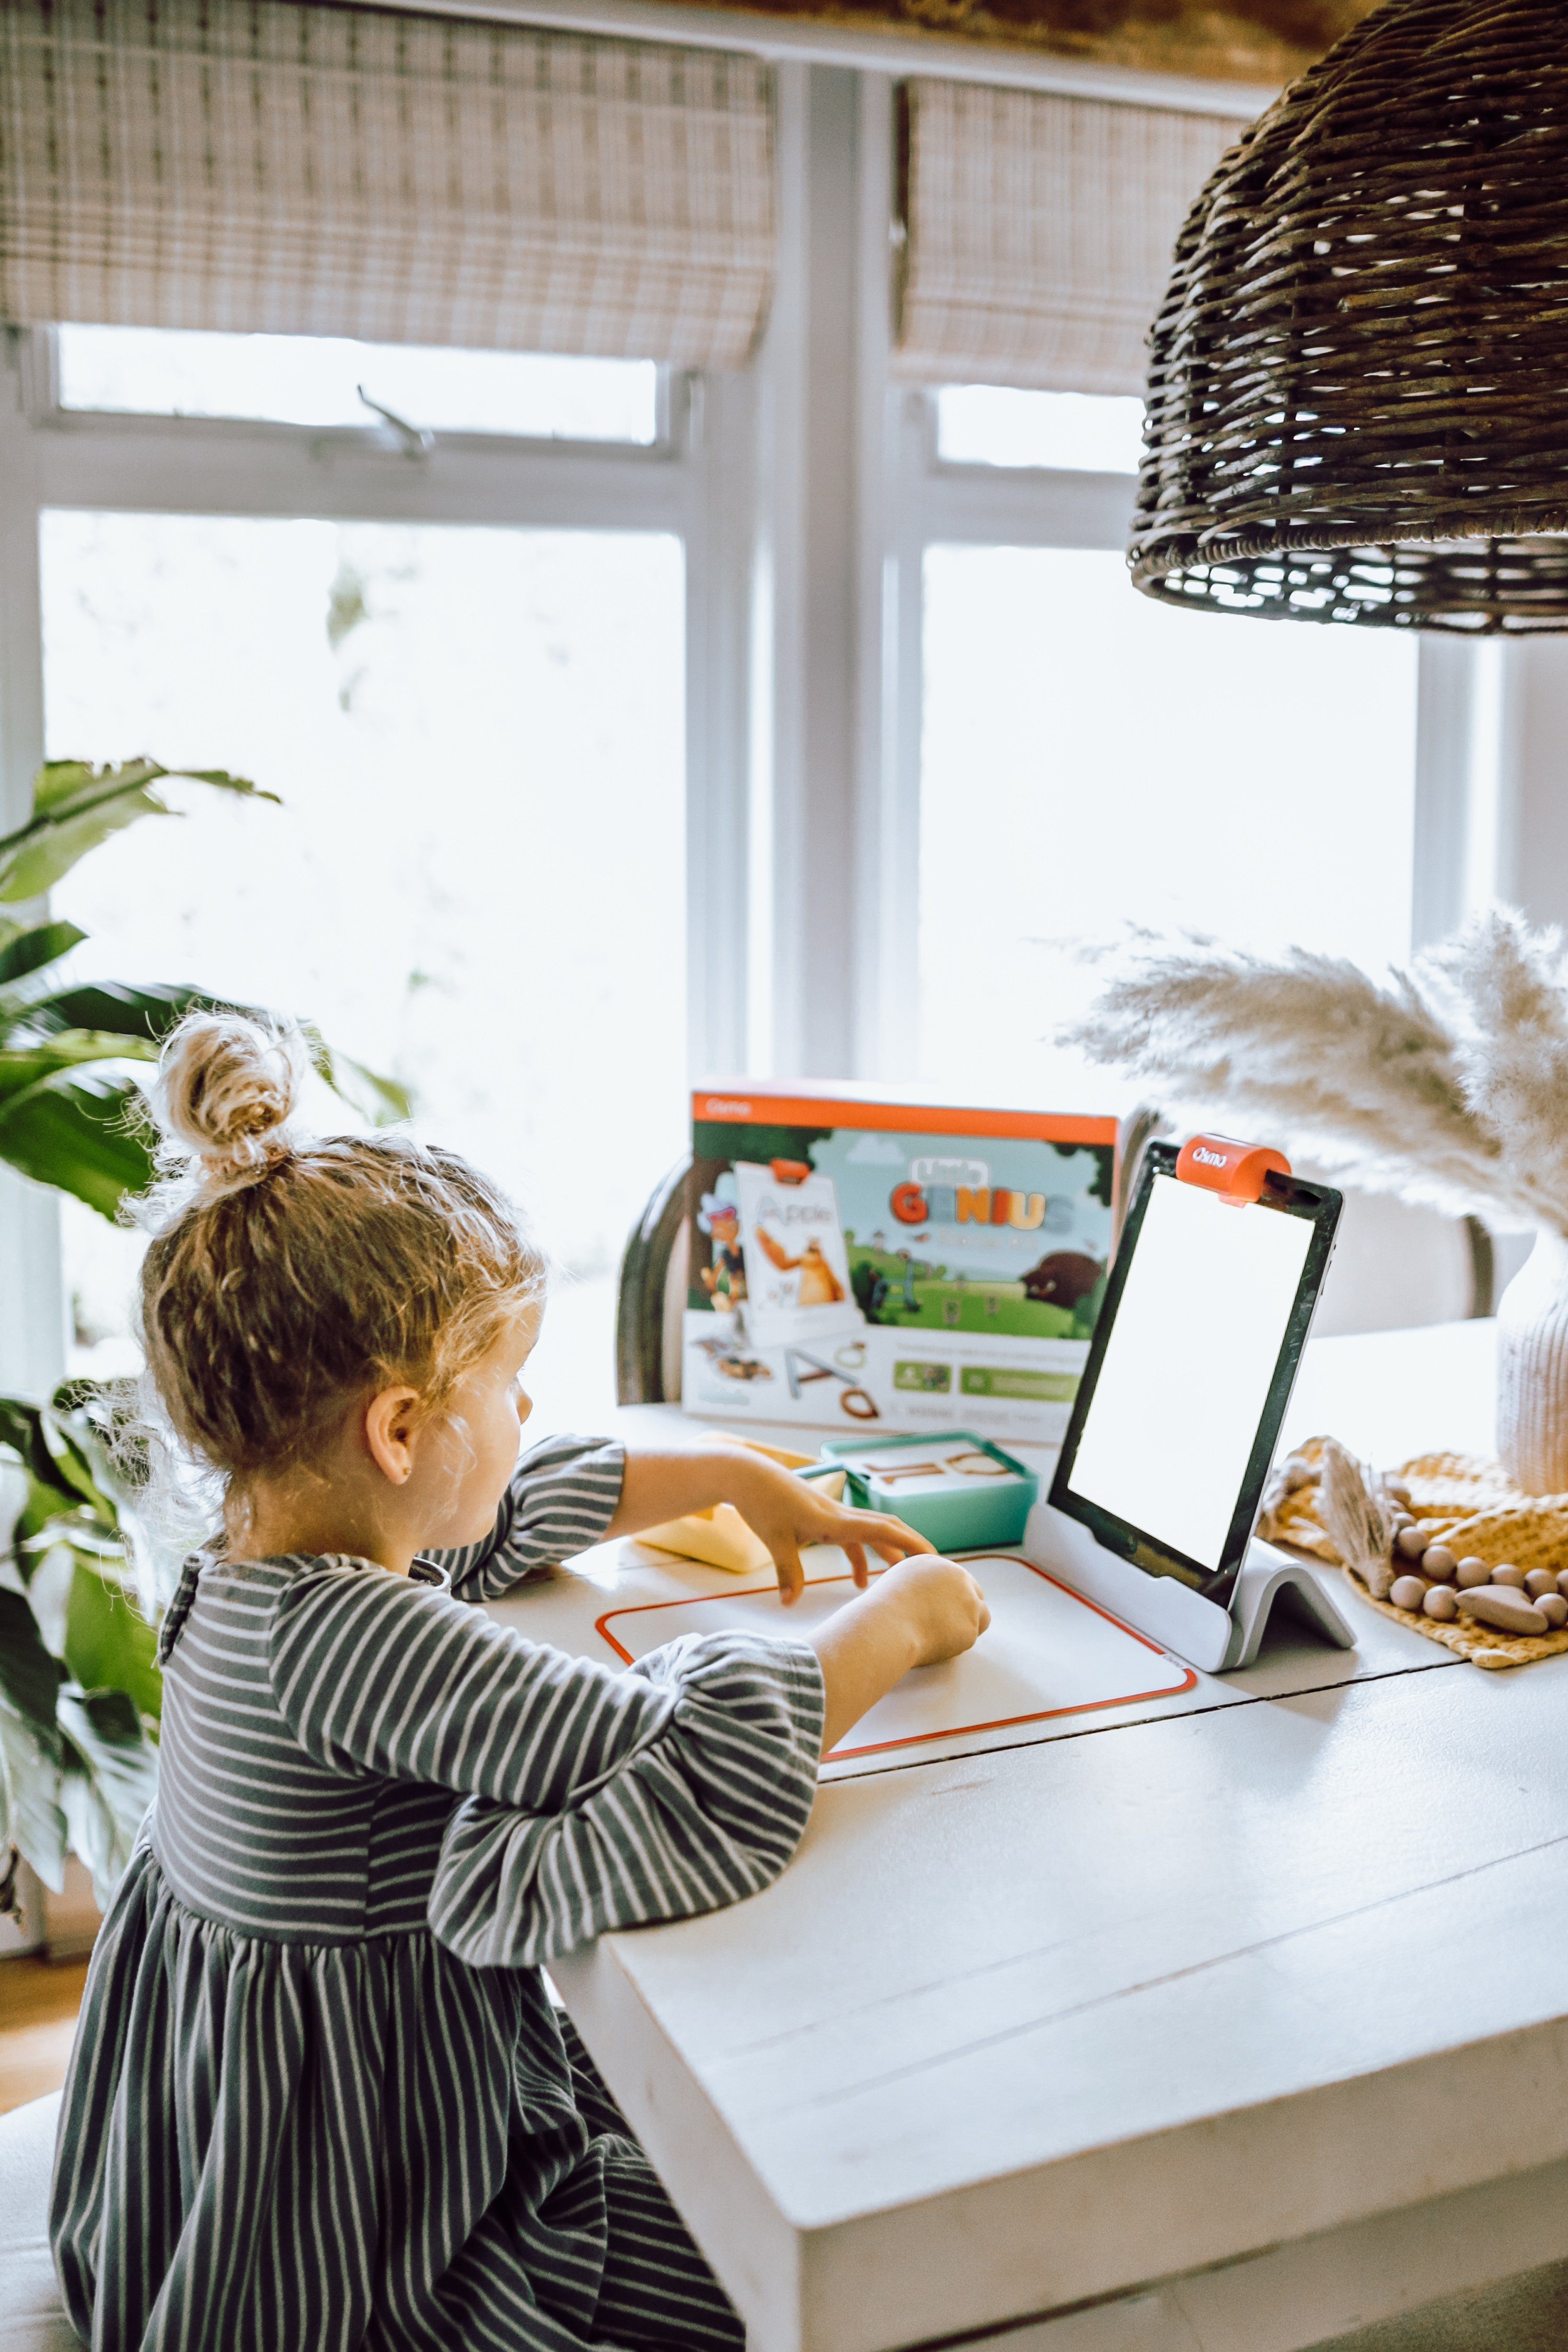 The Best Gifts With Osmo! Are you stuck on what to get your kids for Christmas? This fun interactive game that connects to your iPad brings your drawings and games to life! A fun way for kids to keep busy and learn at the same time. Ideal for kids ages 3-9